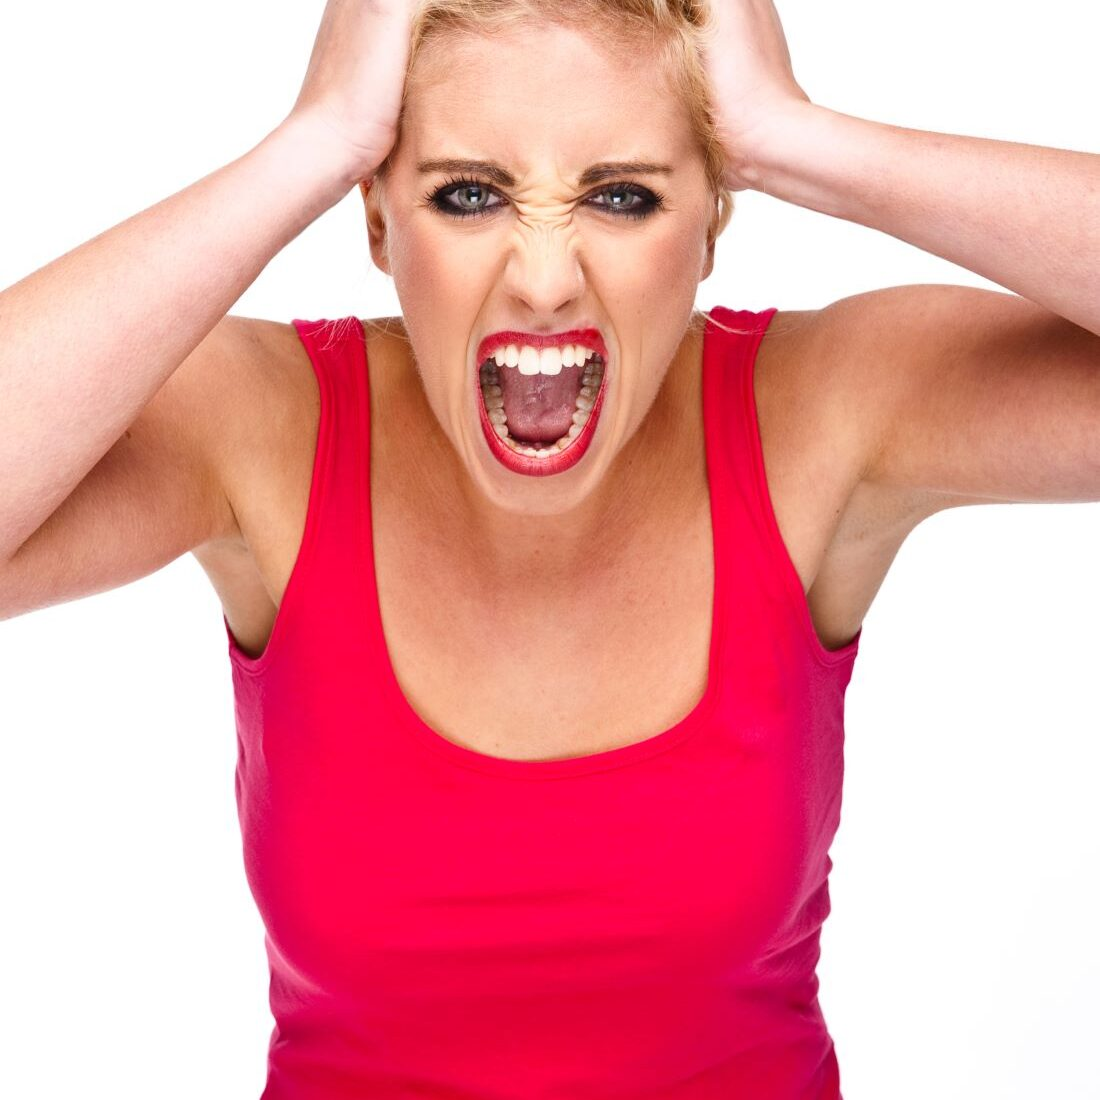 Image of a frustrated woman to demonstrate frustration with manifestation